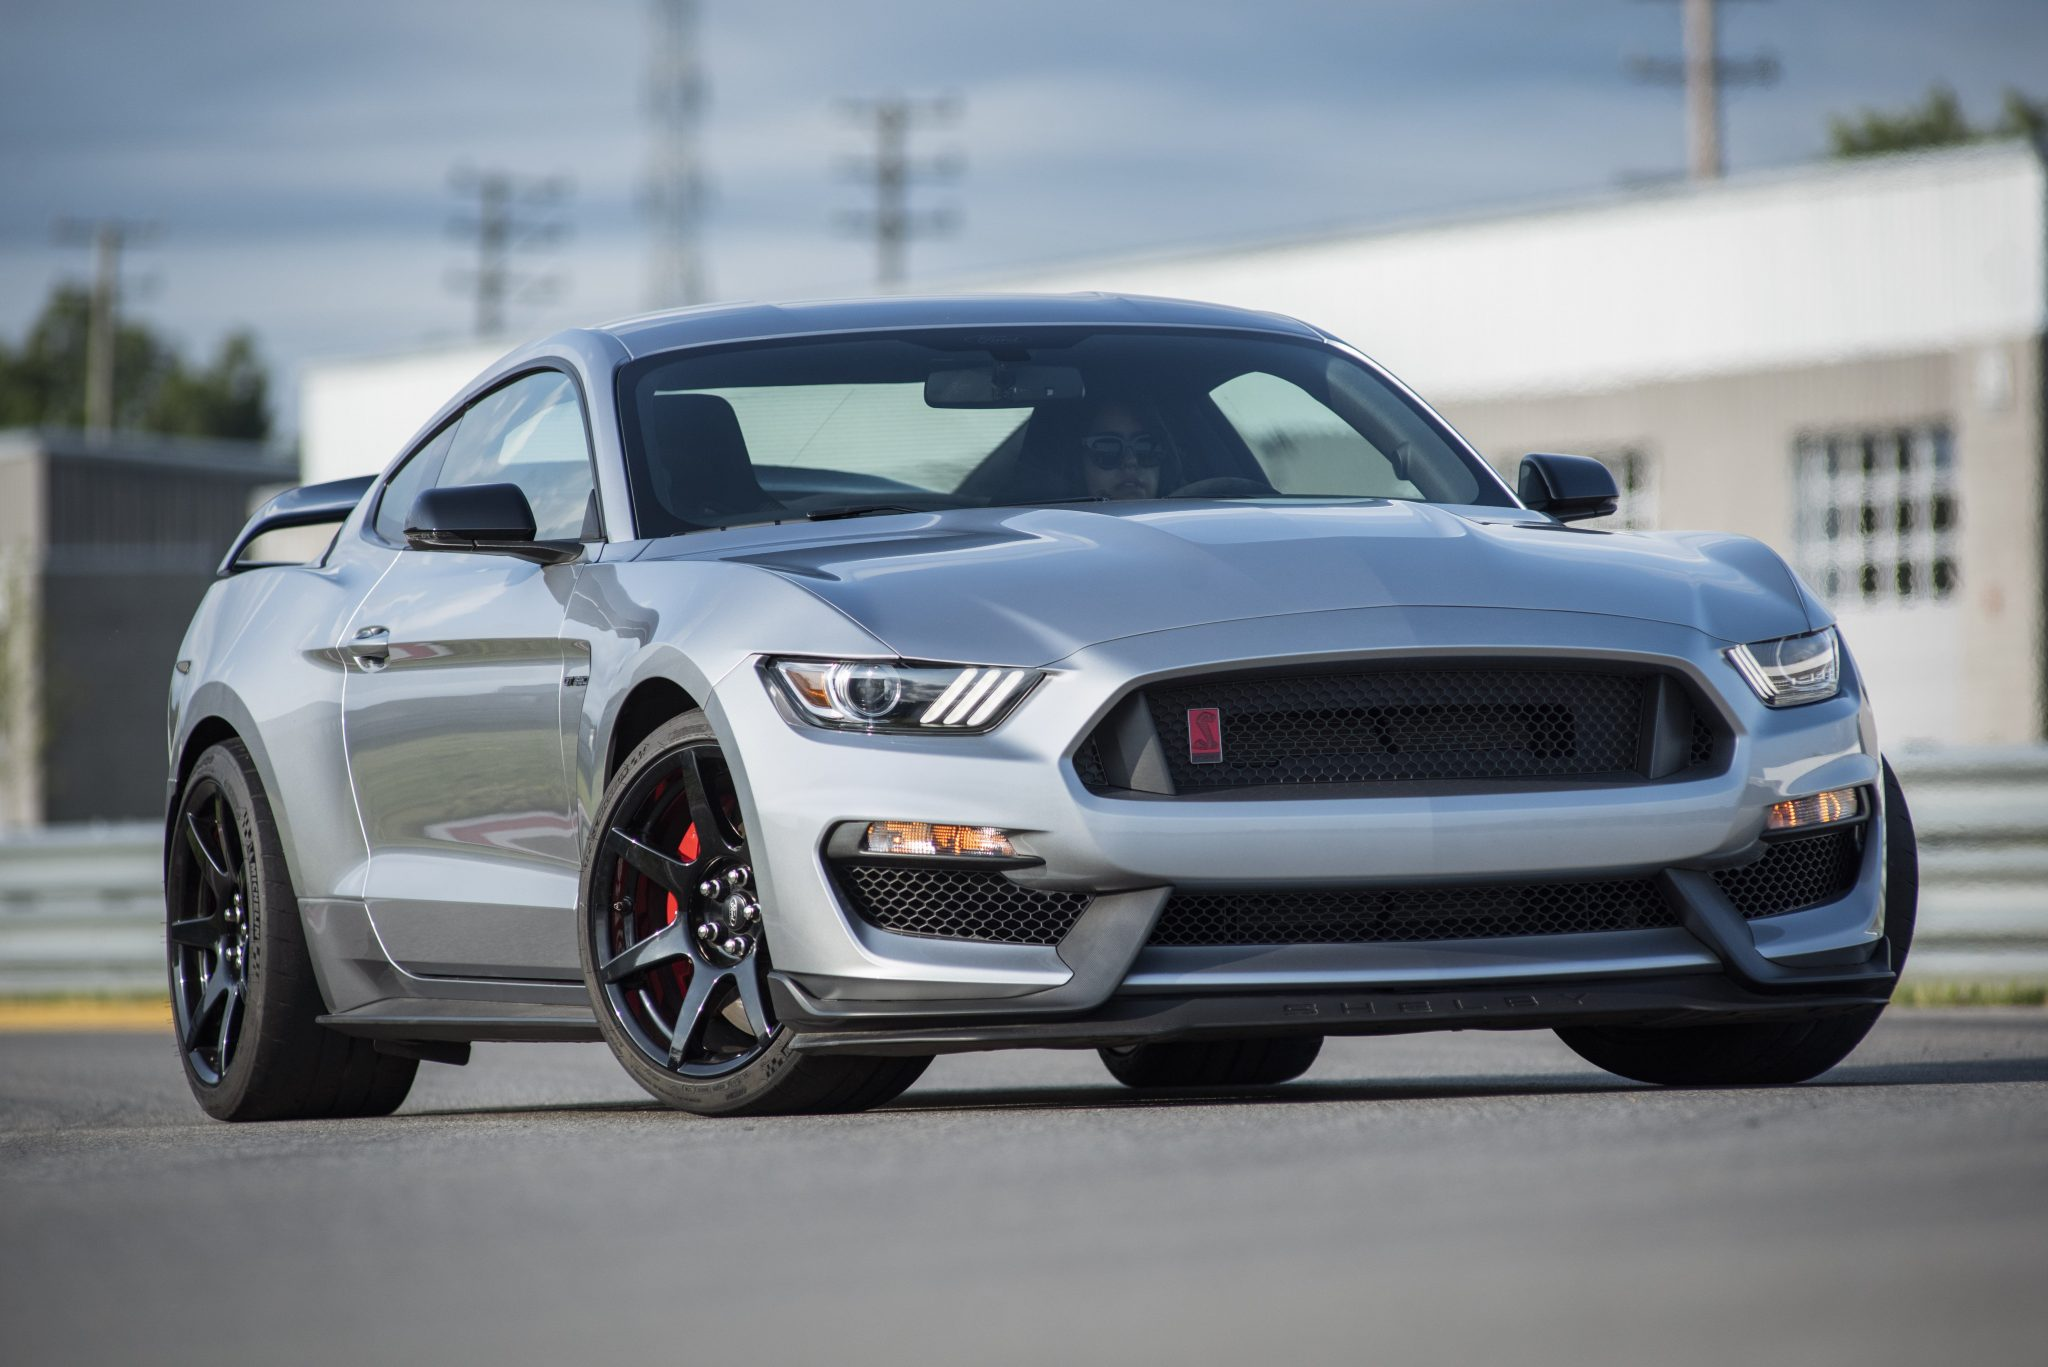 2020 Ford Mustang GT350R Receives Upgrades From New GT500 ...